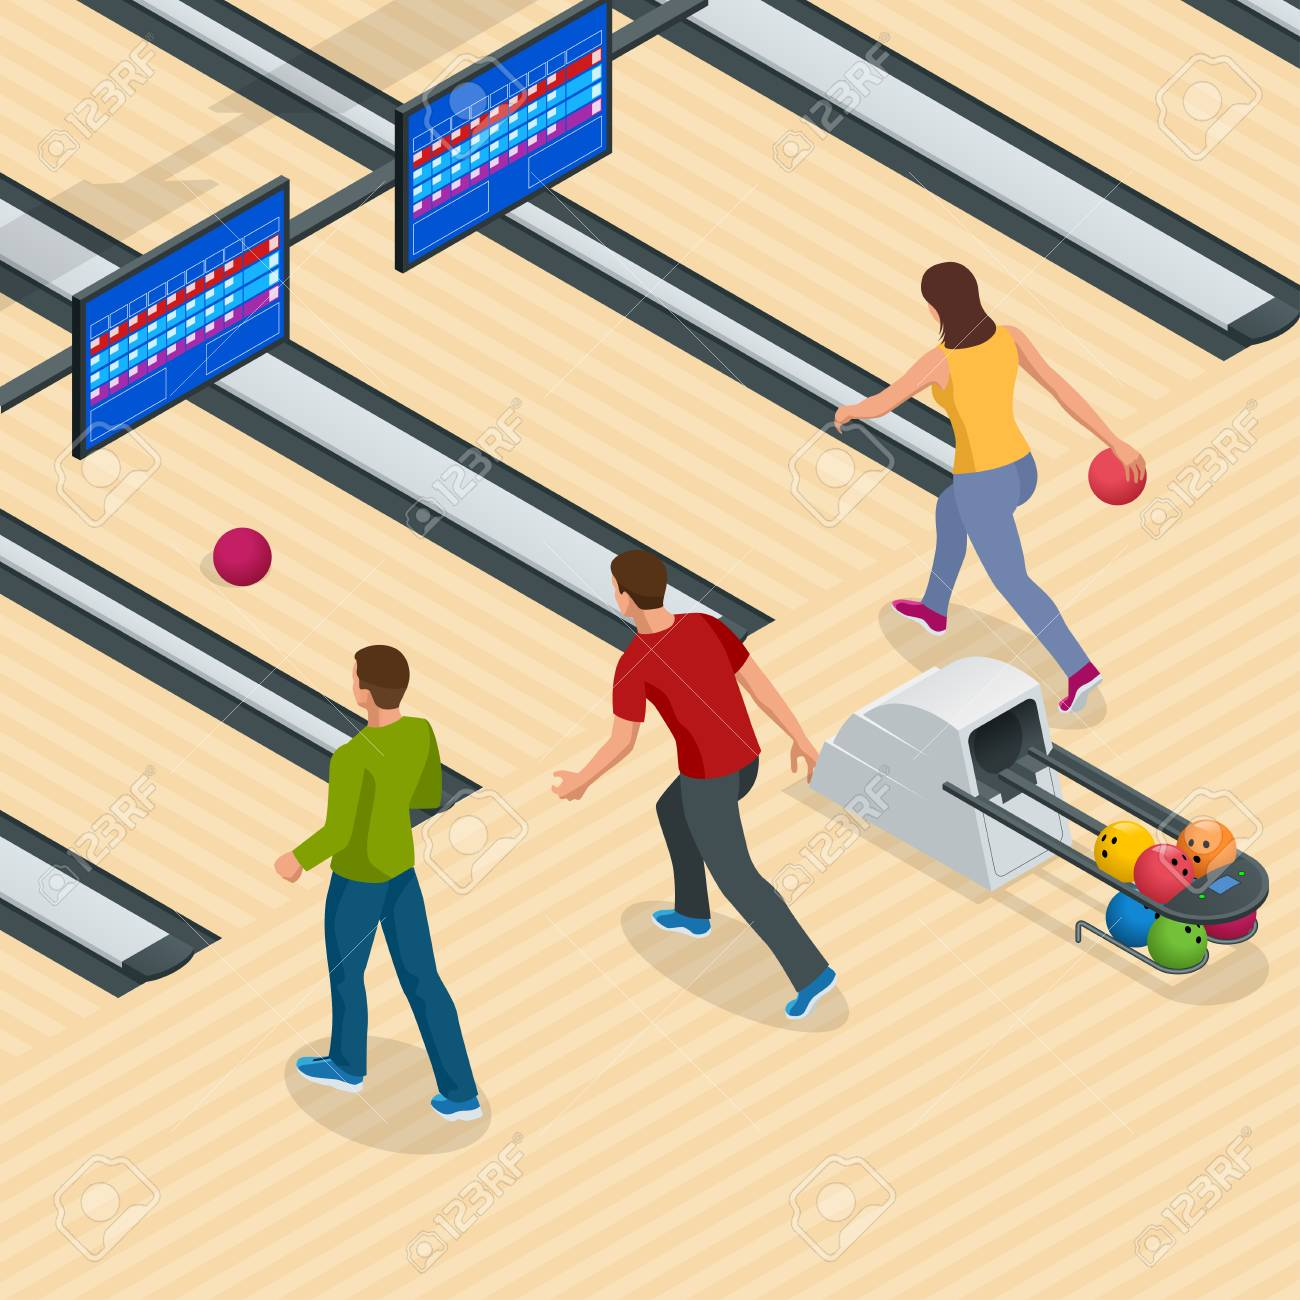 Isometric Bowling Center Interior with Game Equipment. Vector...